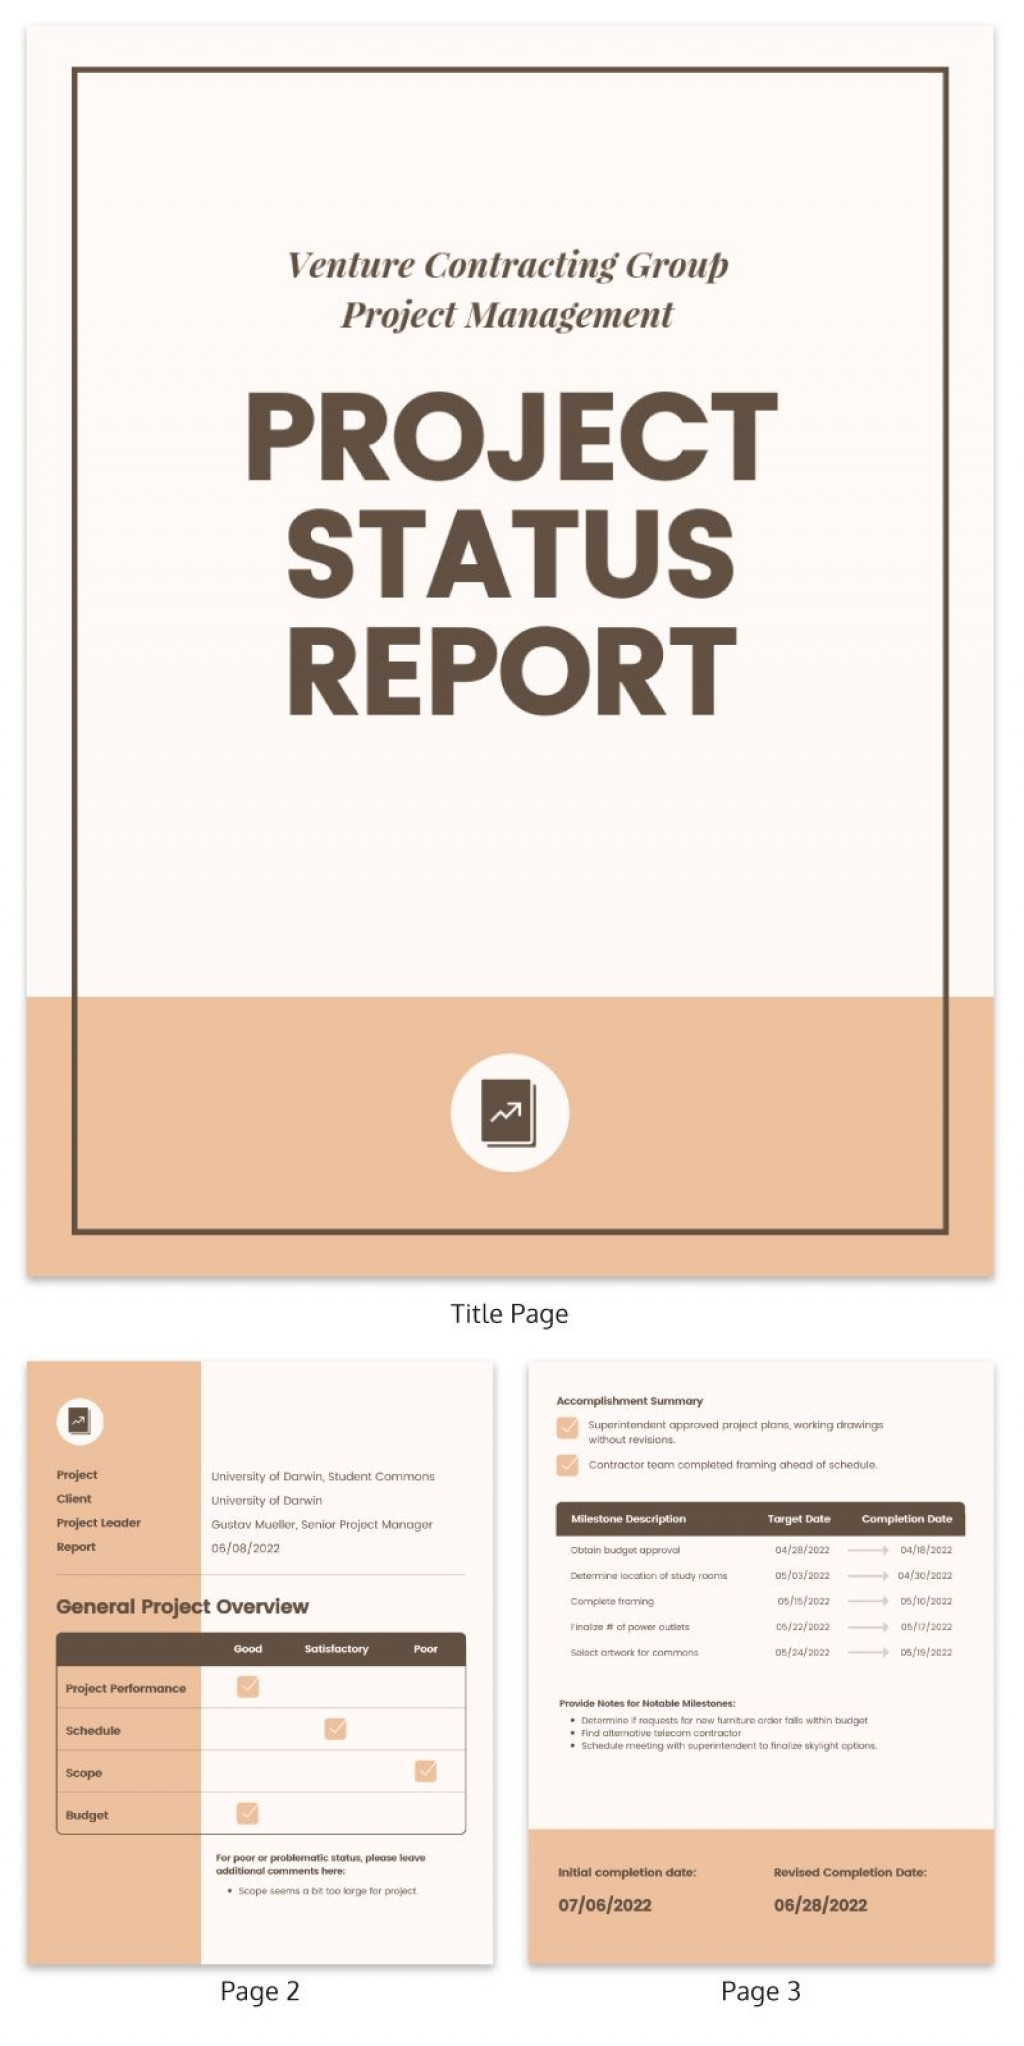 005 Awesome Project Management Statu Report Template Free Example  Excel Weekly WordLarge